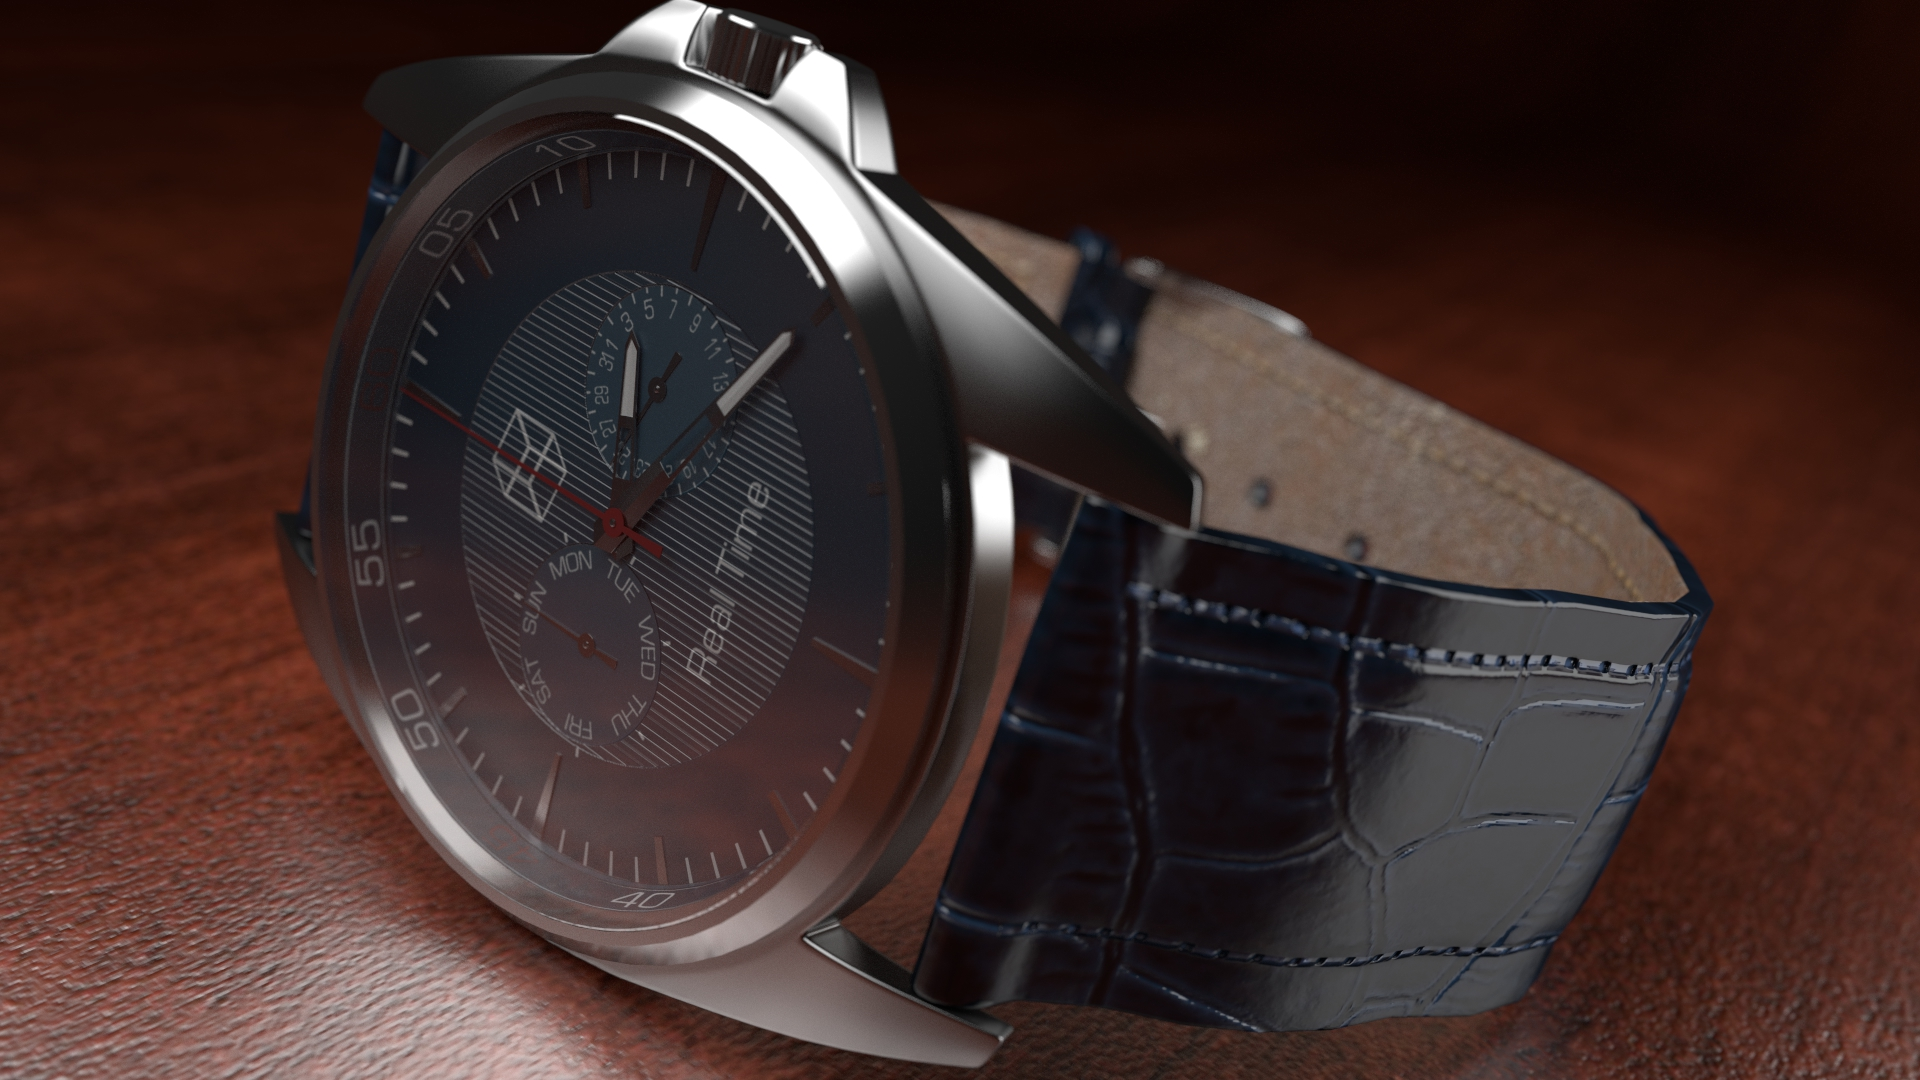 Watch  Montre (Blender 3D + cycles) by TomWalks on DeviantArt